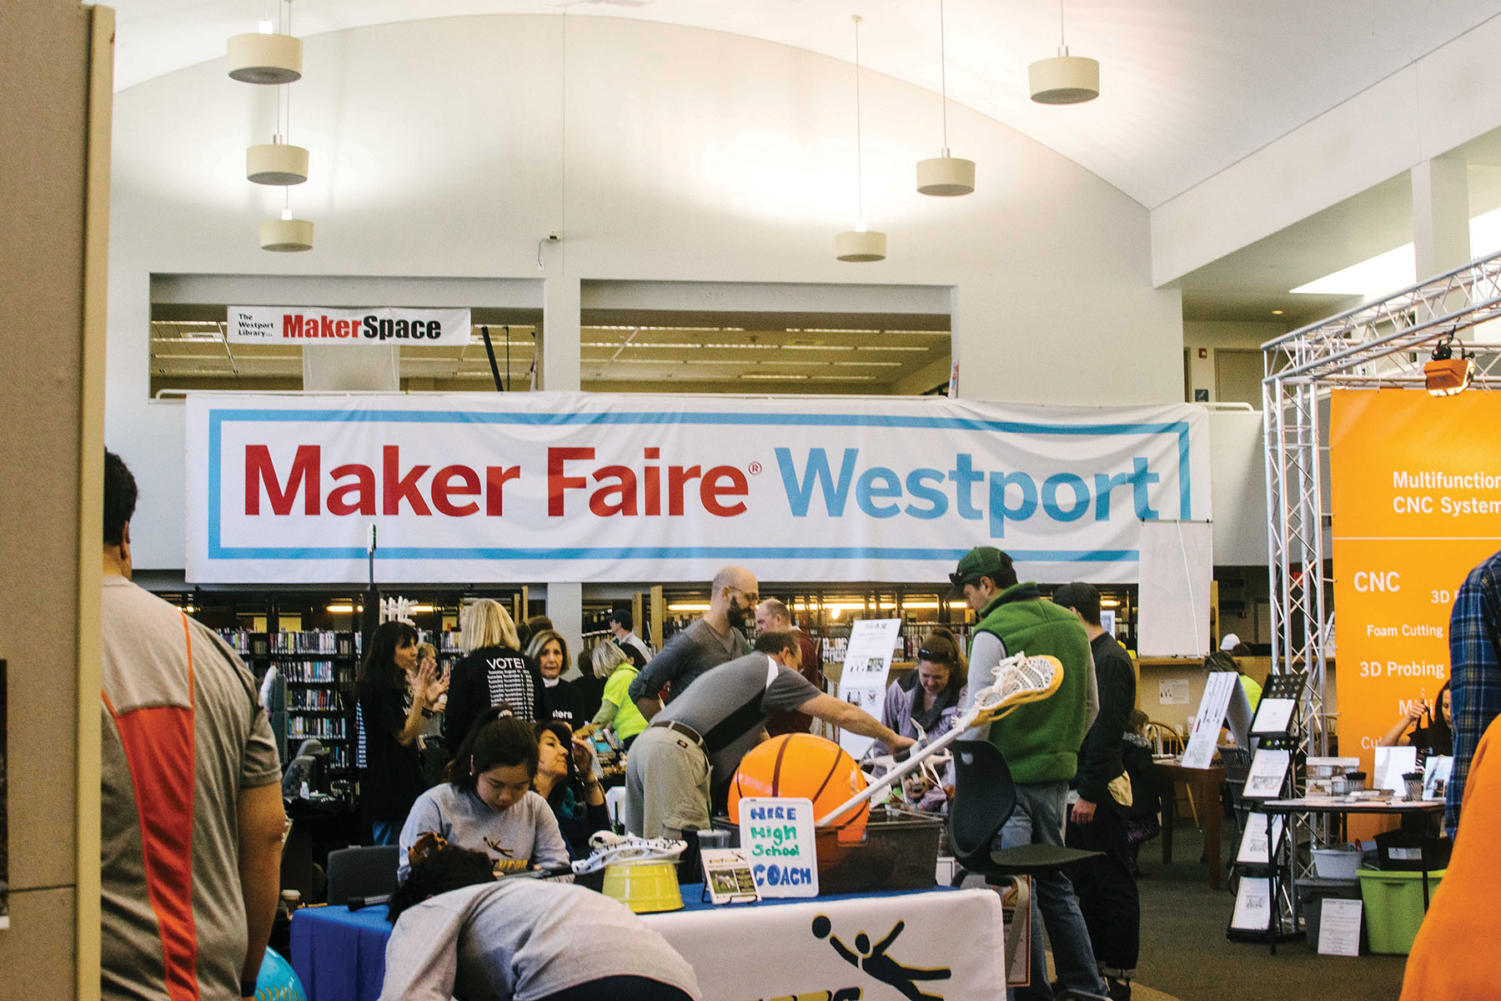 Thousands attended the  Maker Faire, held each year at the Westport Public Library and the Jesup Green area.